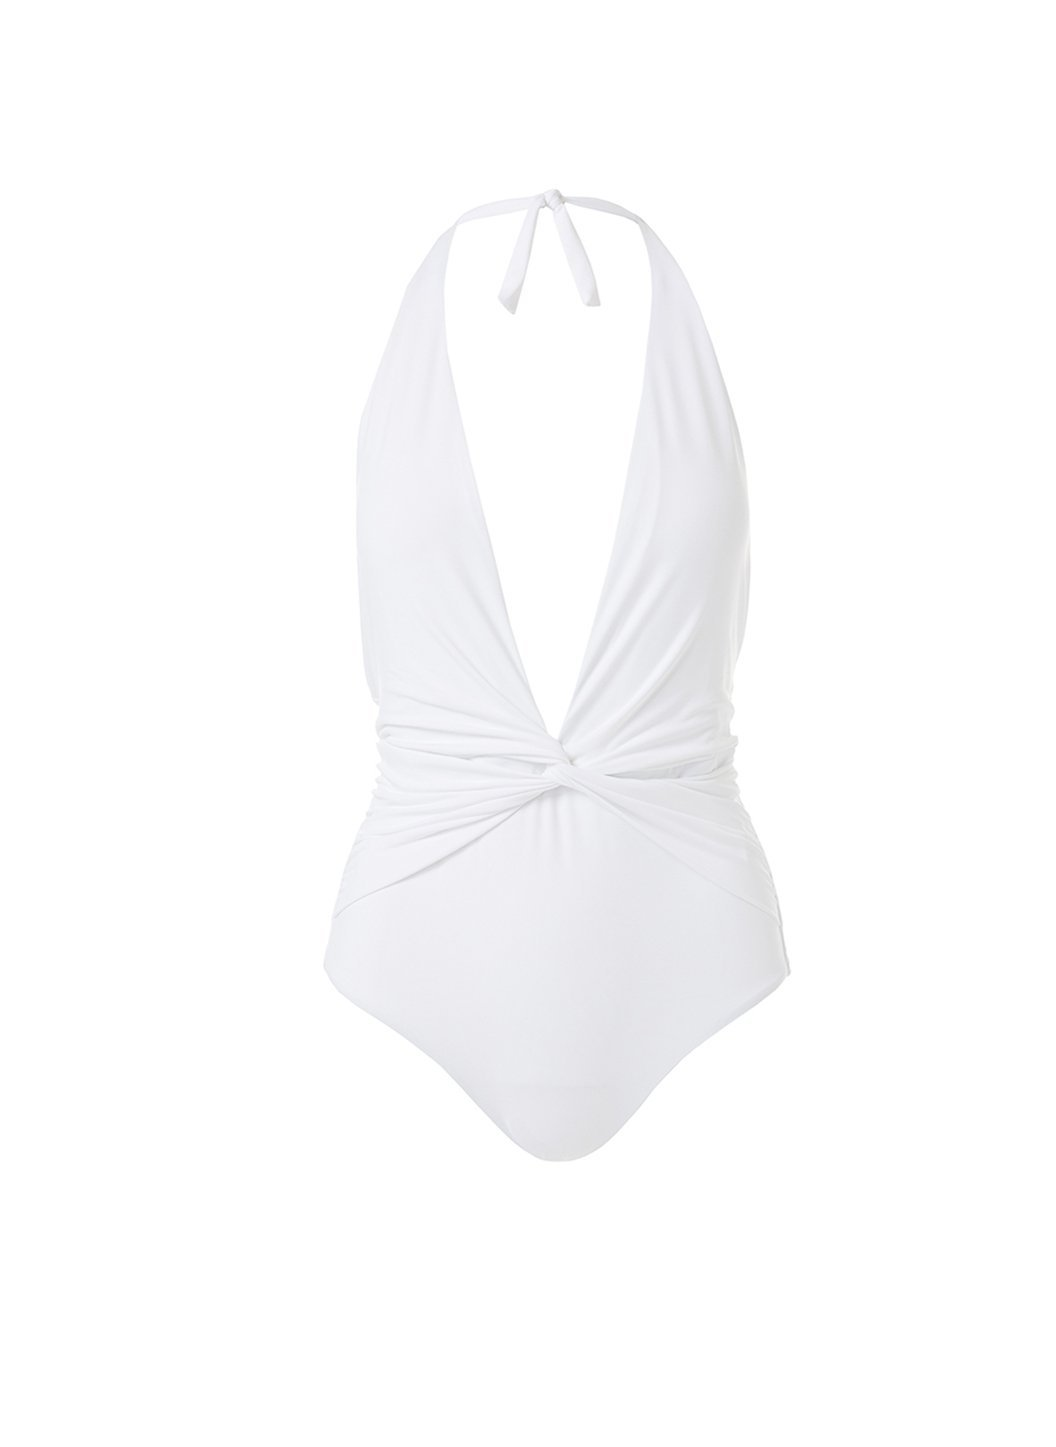 tahiti white halterneck plunge ruched onepiece swimsuit 2019